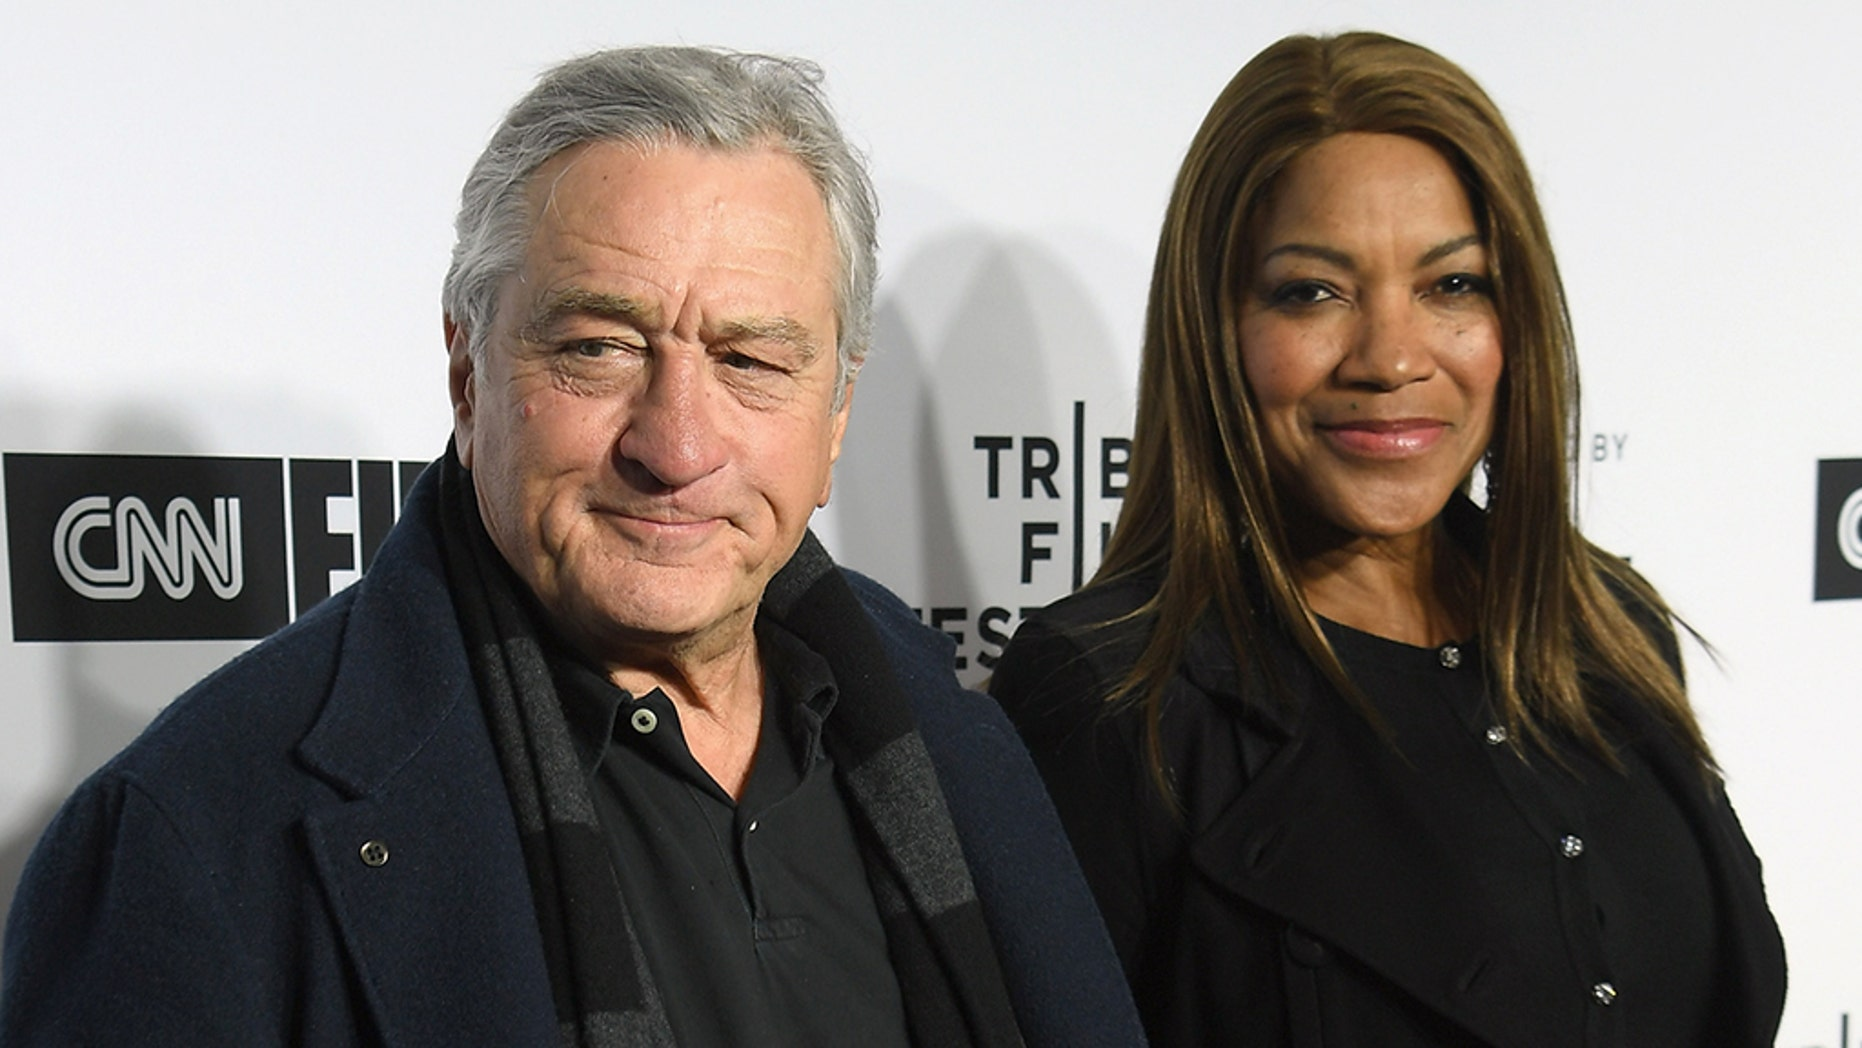 Robert De Niro and his wife, Grace Hightower, have reportedly split after over 20 years of marriage, according to multiple outlets.